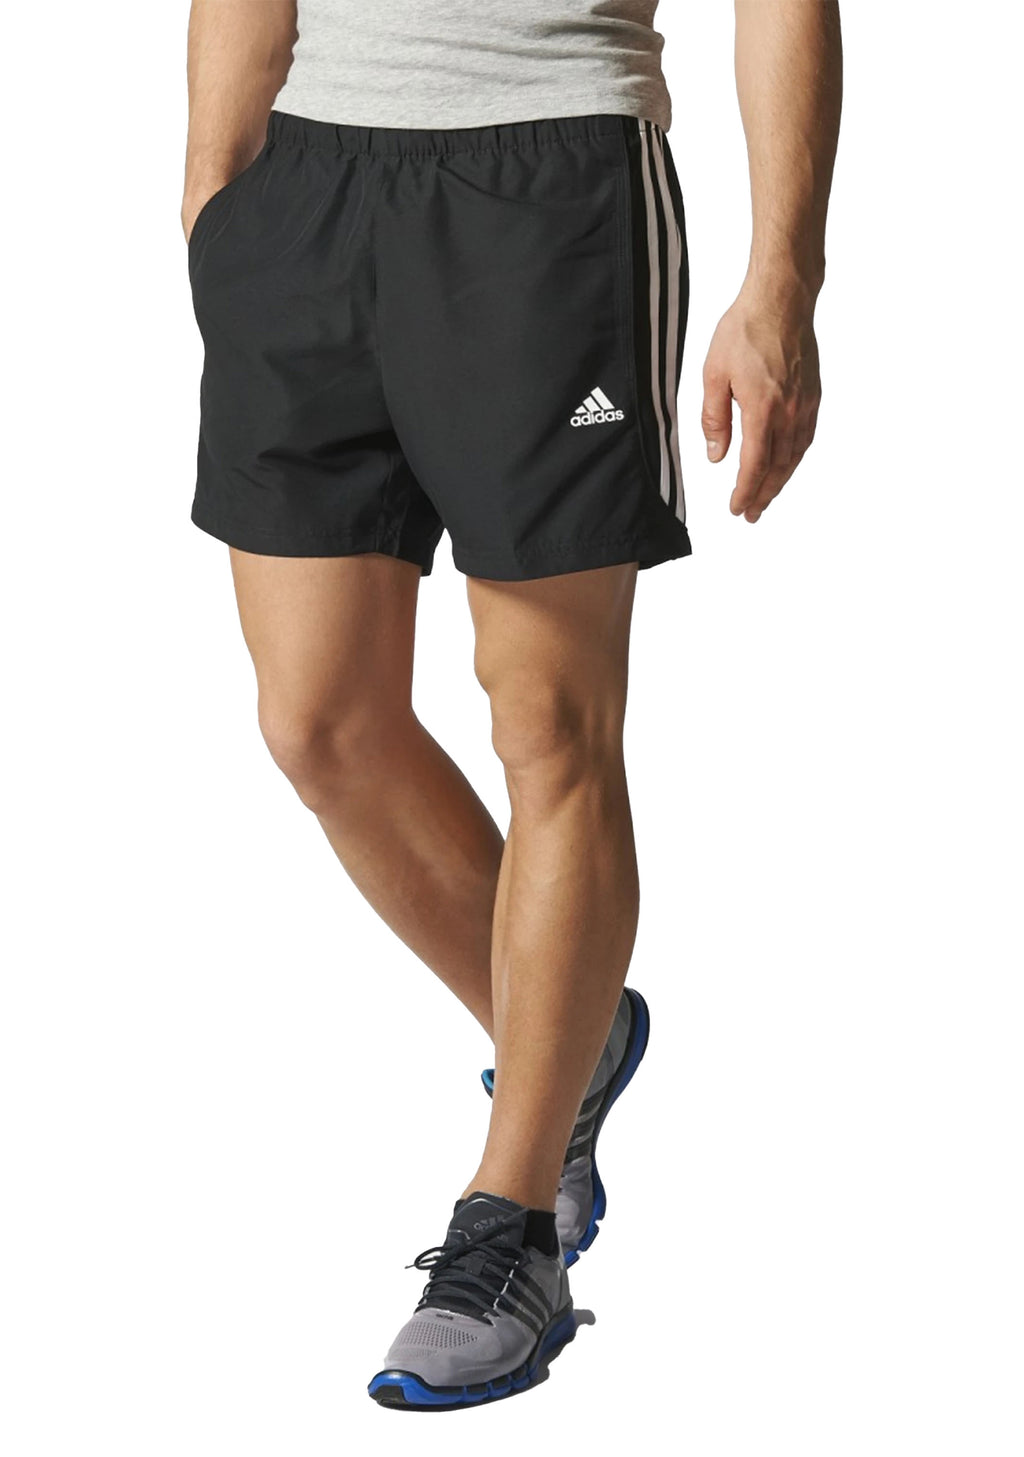 ADIDAS ESSENTIALS 3 STRIPES CHELSEA SHORTS MENS BLACK <br> S88113